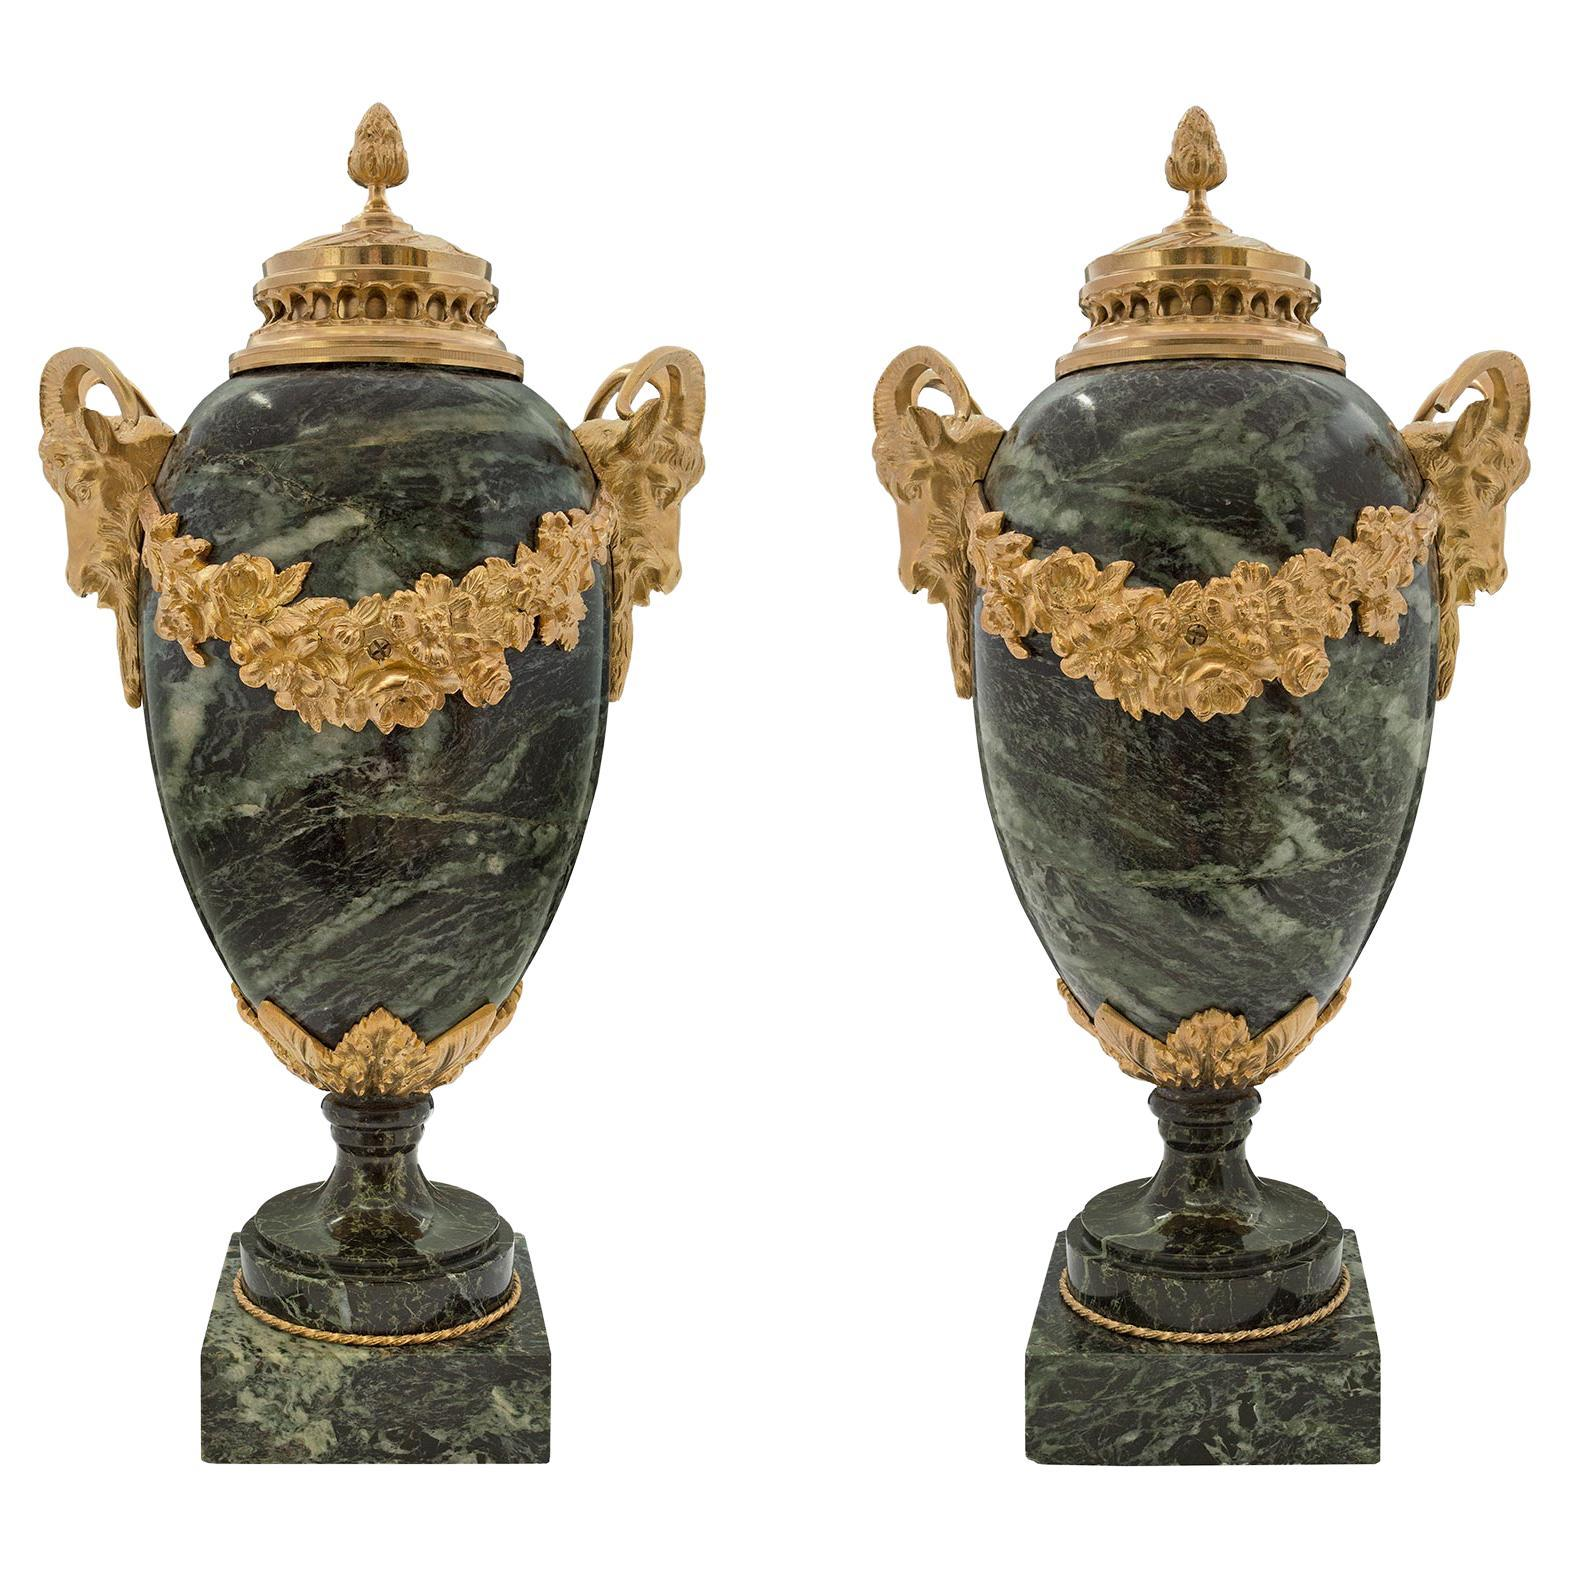 French 19th Century Louis XVI Style Vert De Patricia Marble and Ormolu Urns